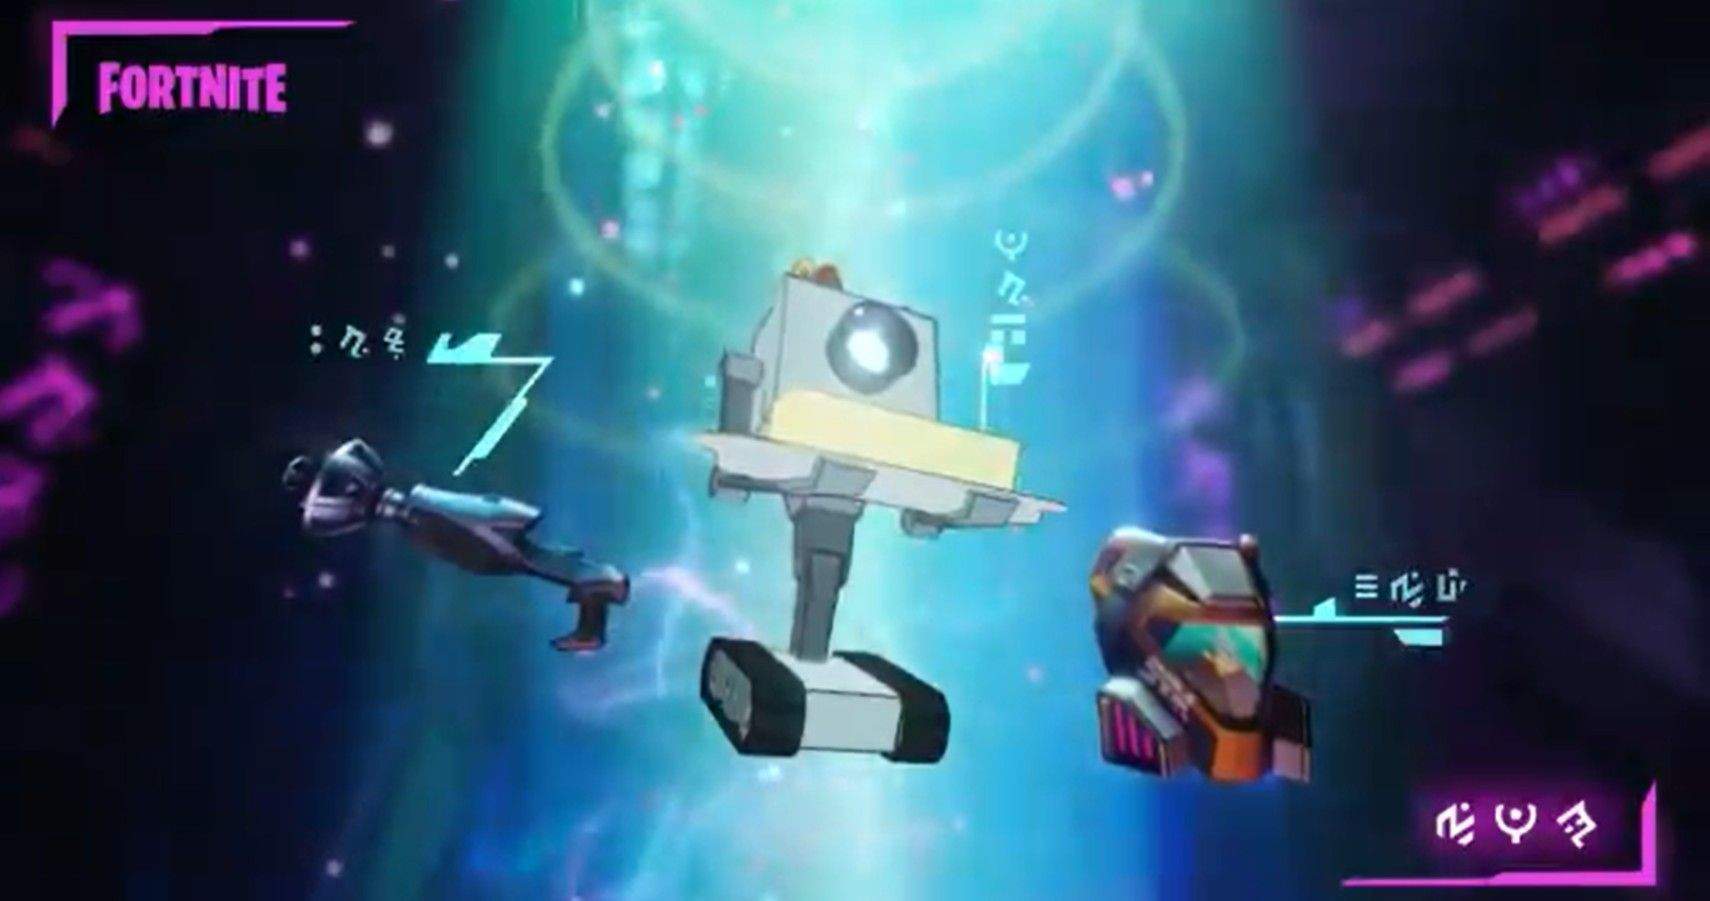 New Fortnite Season 7 Teaser Includes Rick And Morty's Butter Robot